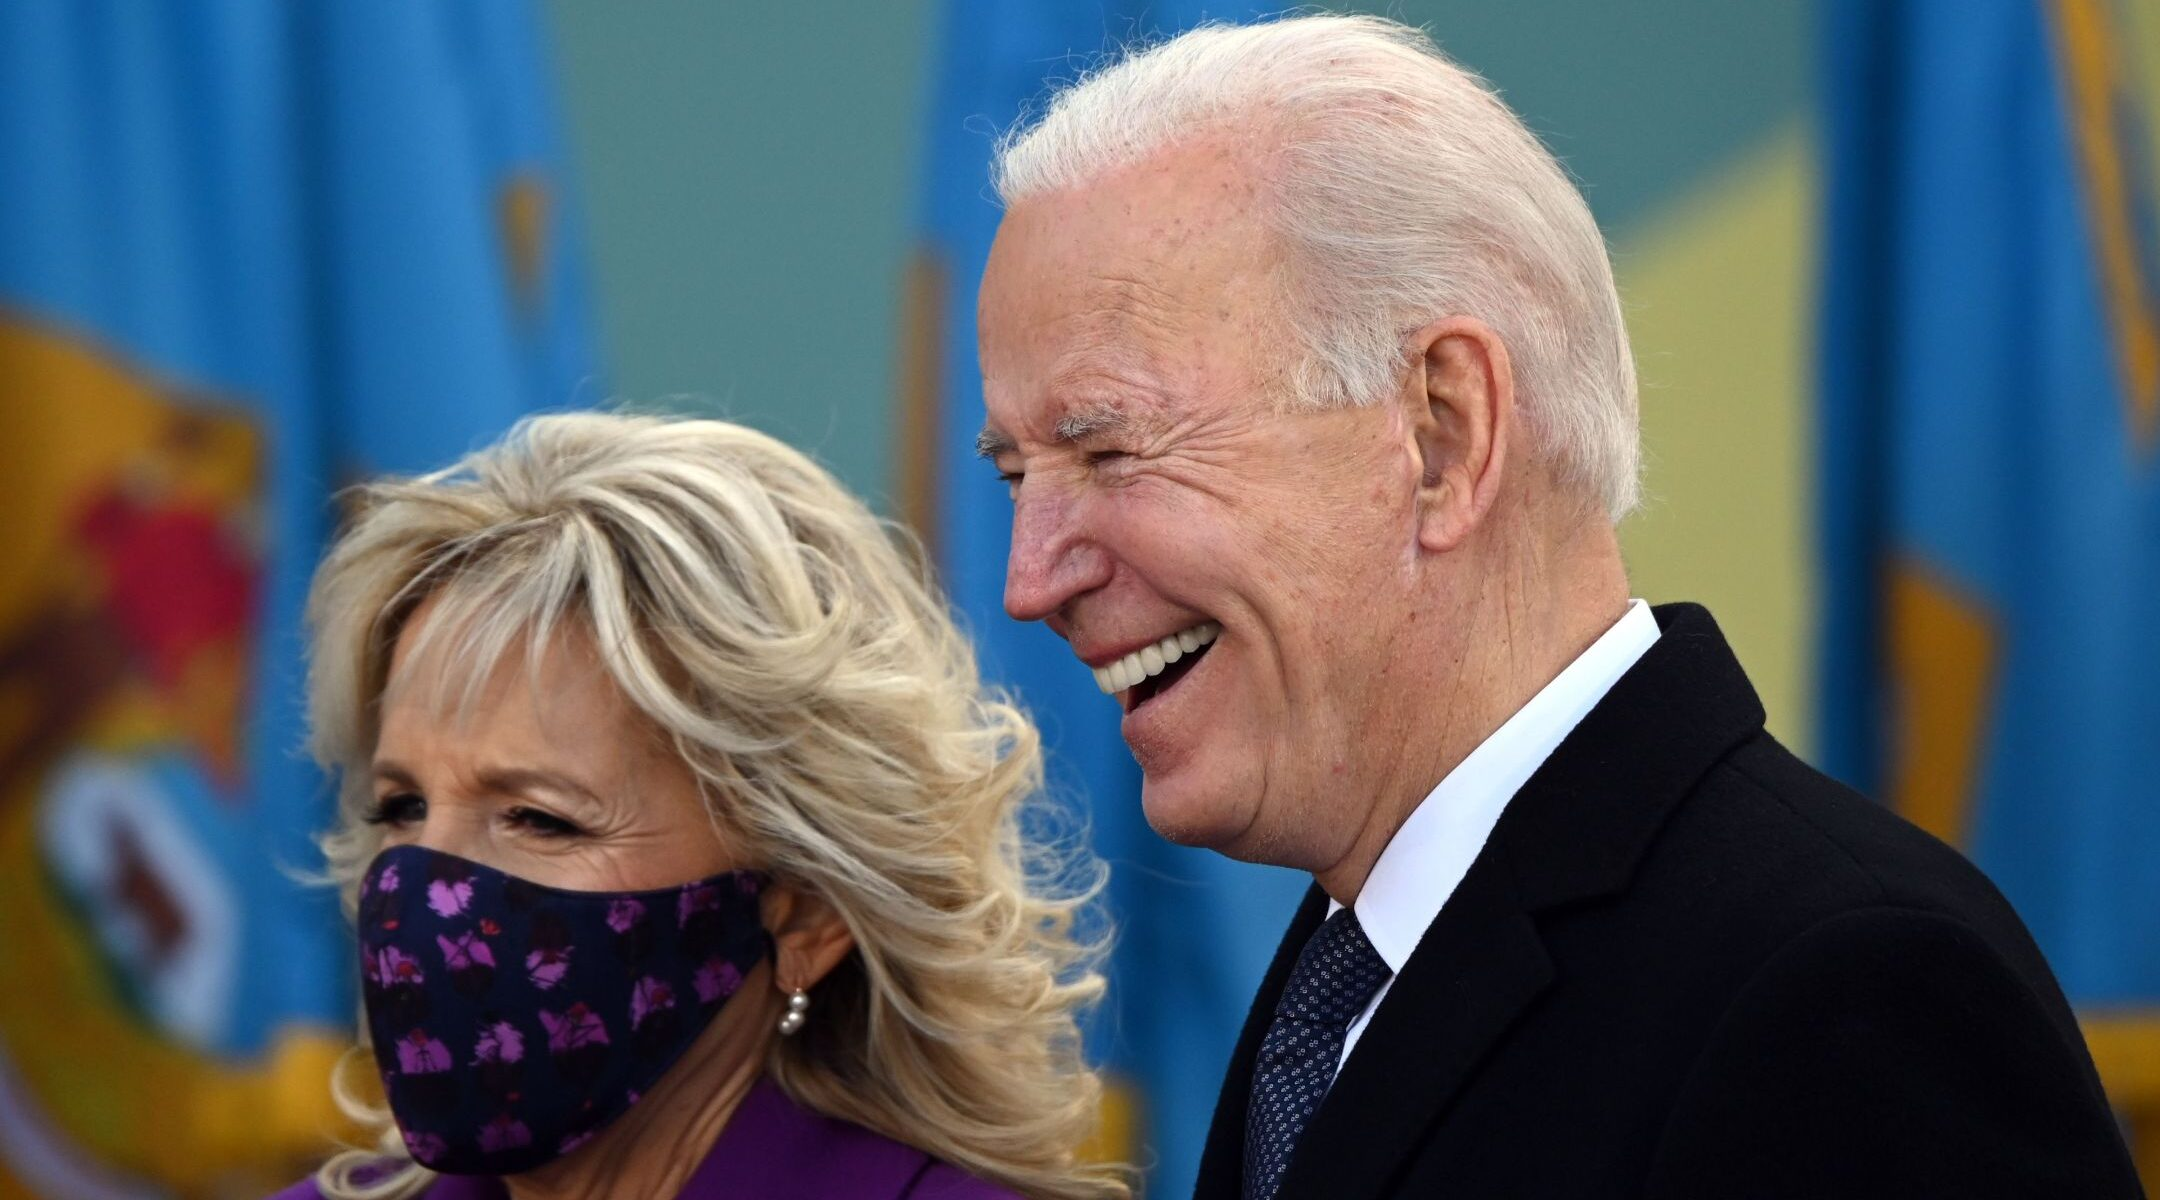 President-elect Joe Biden and wife Jill attend a farewell event at the airport in New Castle, Delaware, before departing for Washington, Jan. 19, 2021. (Photo/JTA-Jim Watson-AFP via Getty Images)